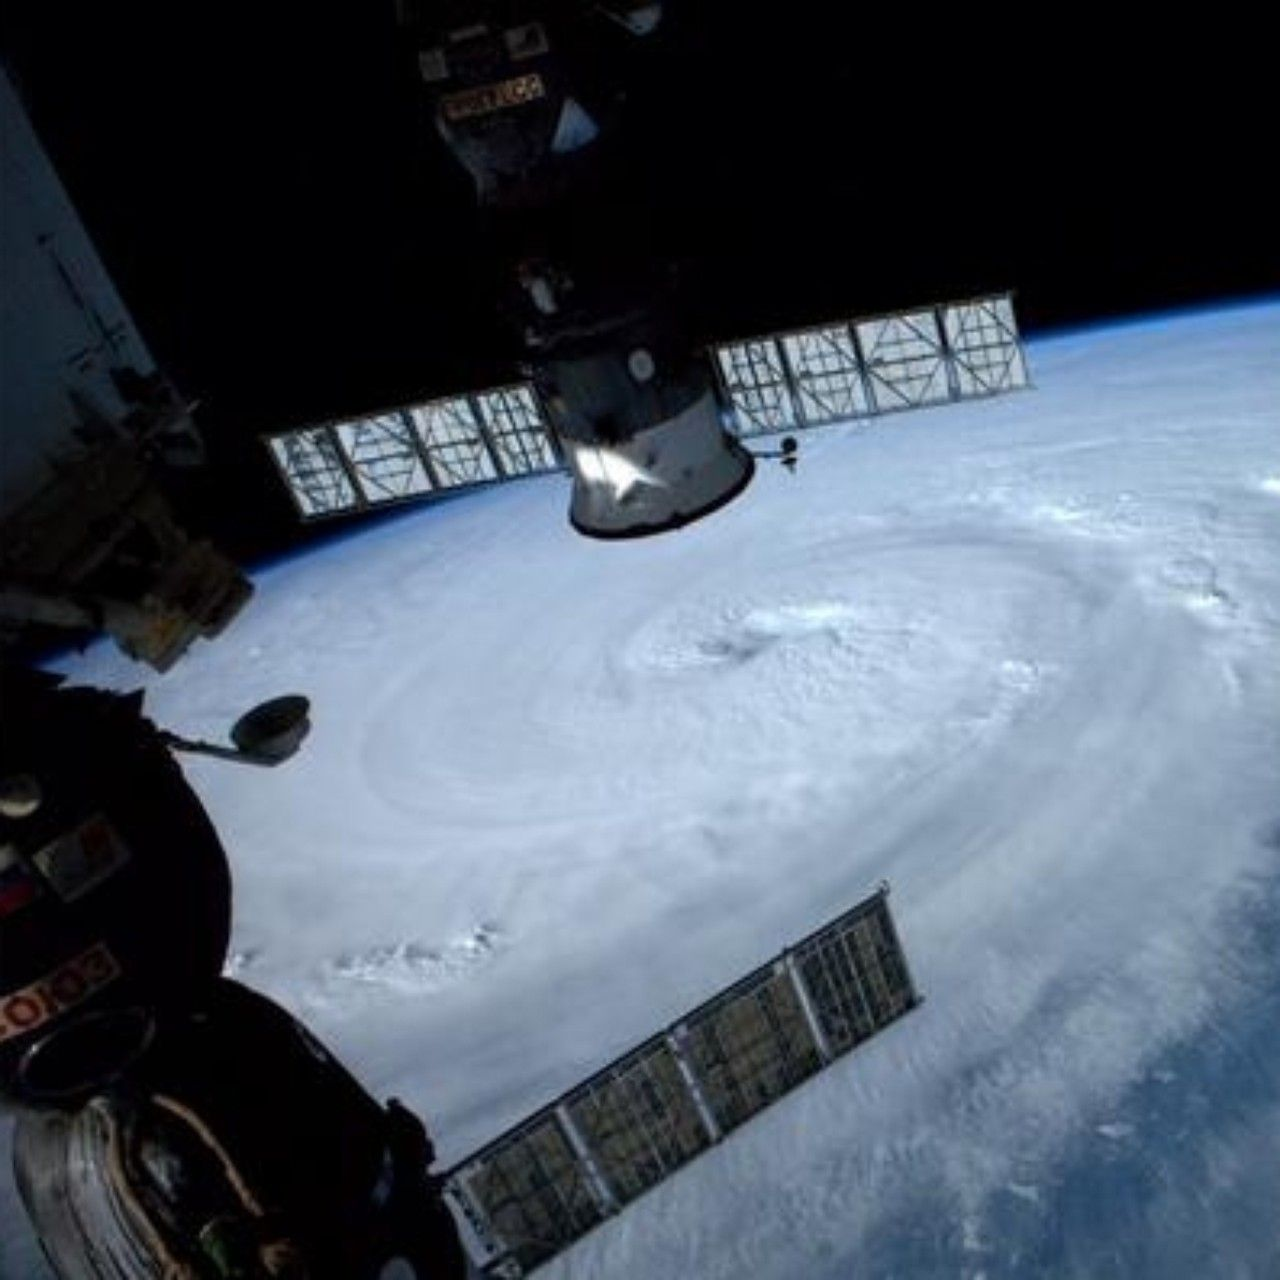 Super Typhoon heading toward Japan WORLD - JULY 7, 2014 2:47AM